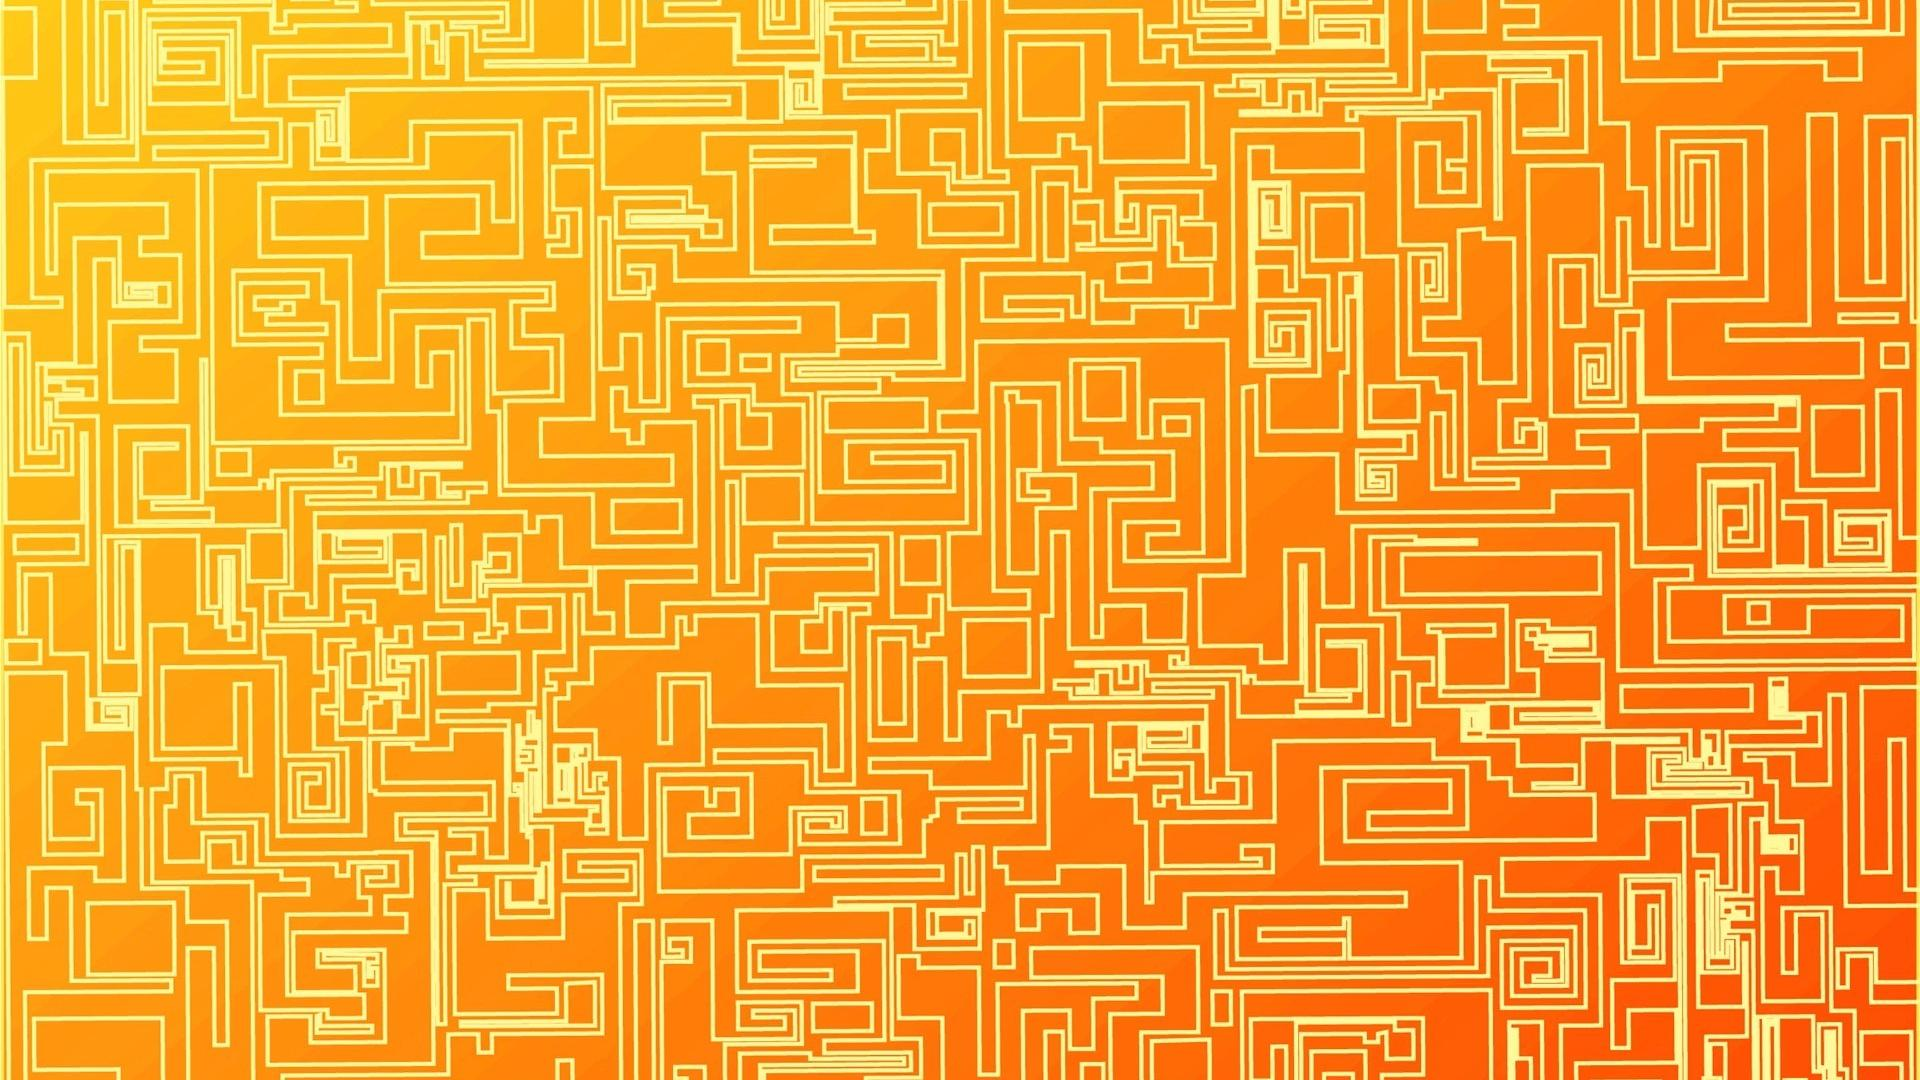 download Abstract orange geometry digital art lines wallpaper 1920x1080